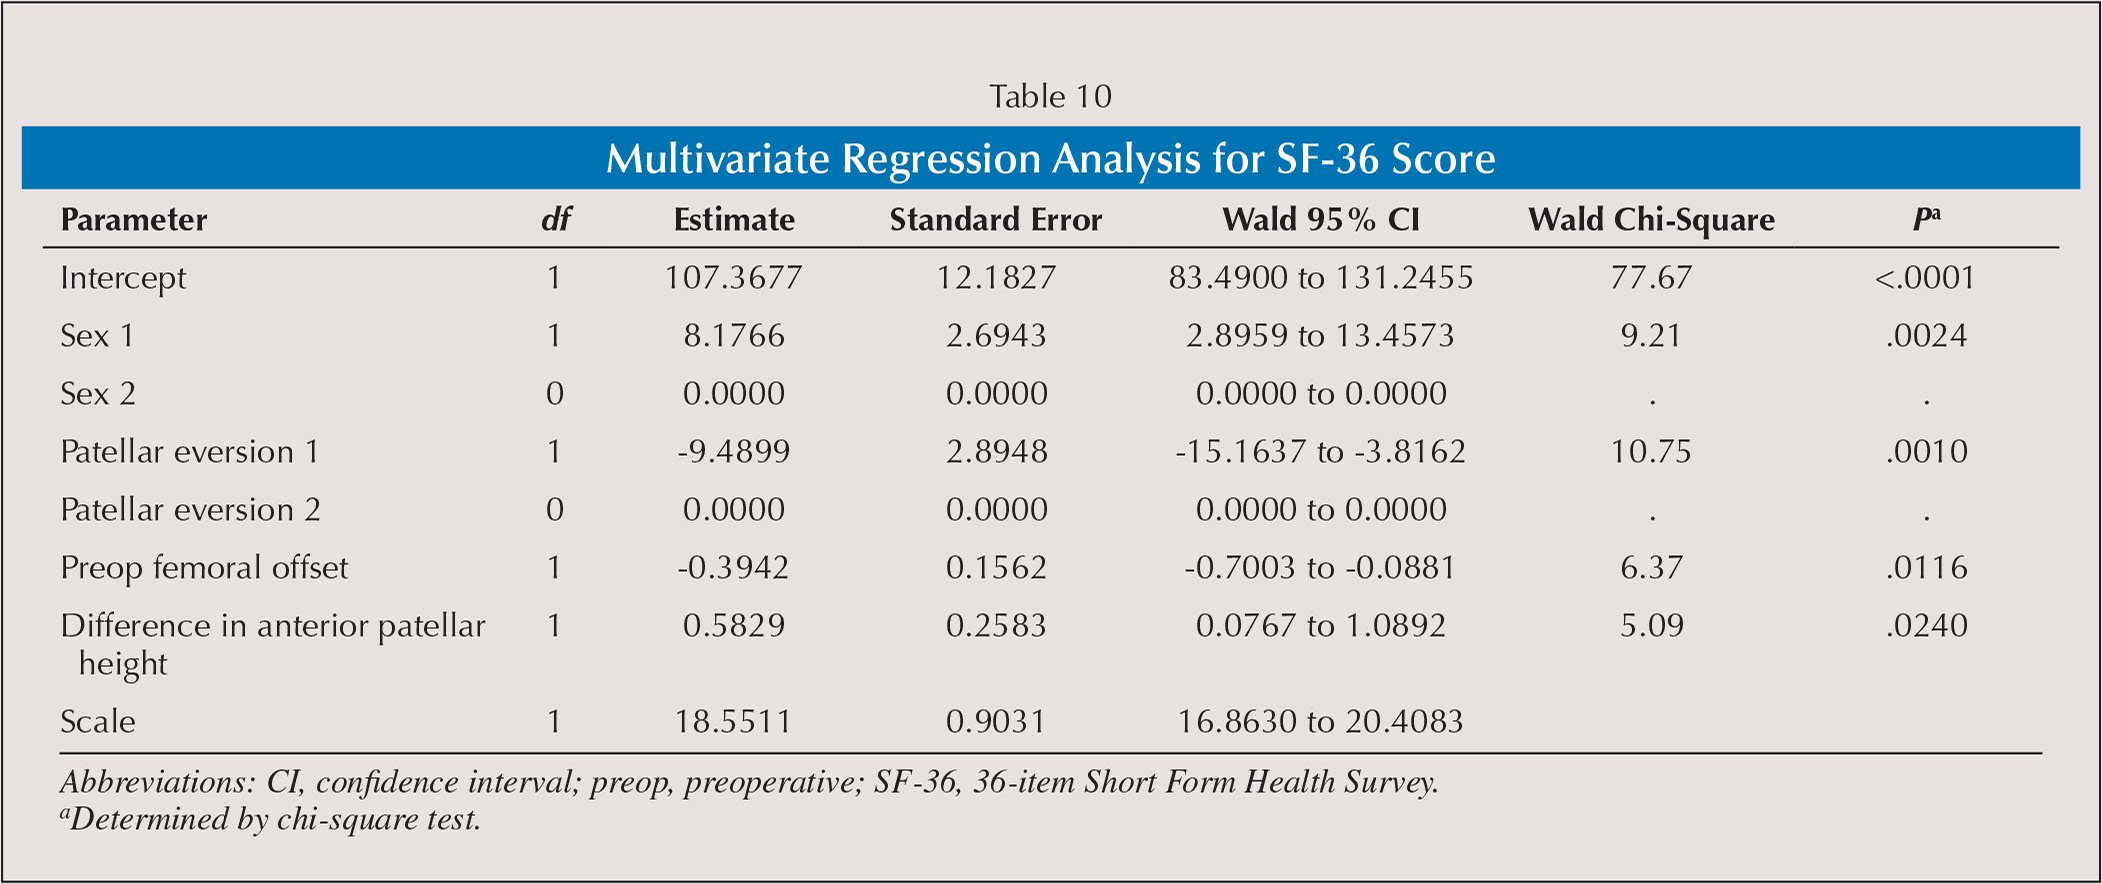 Multivariate Regression Analysis for SF-36 Score